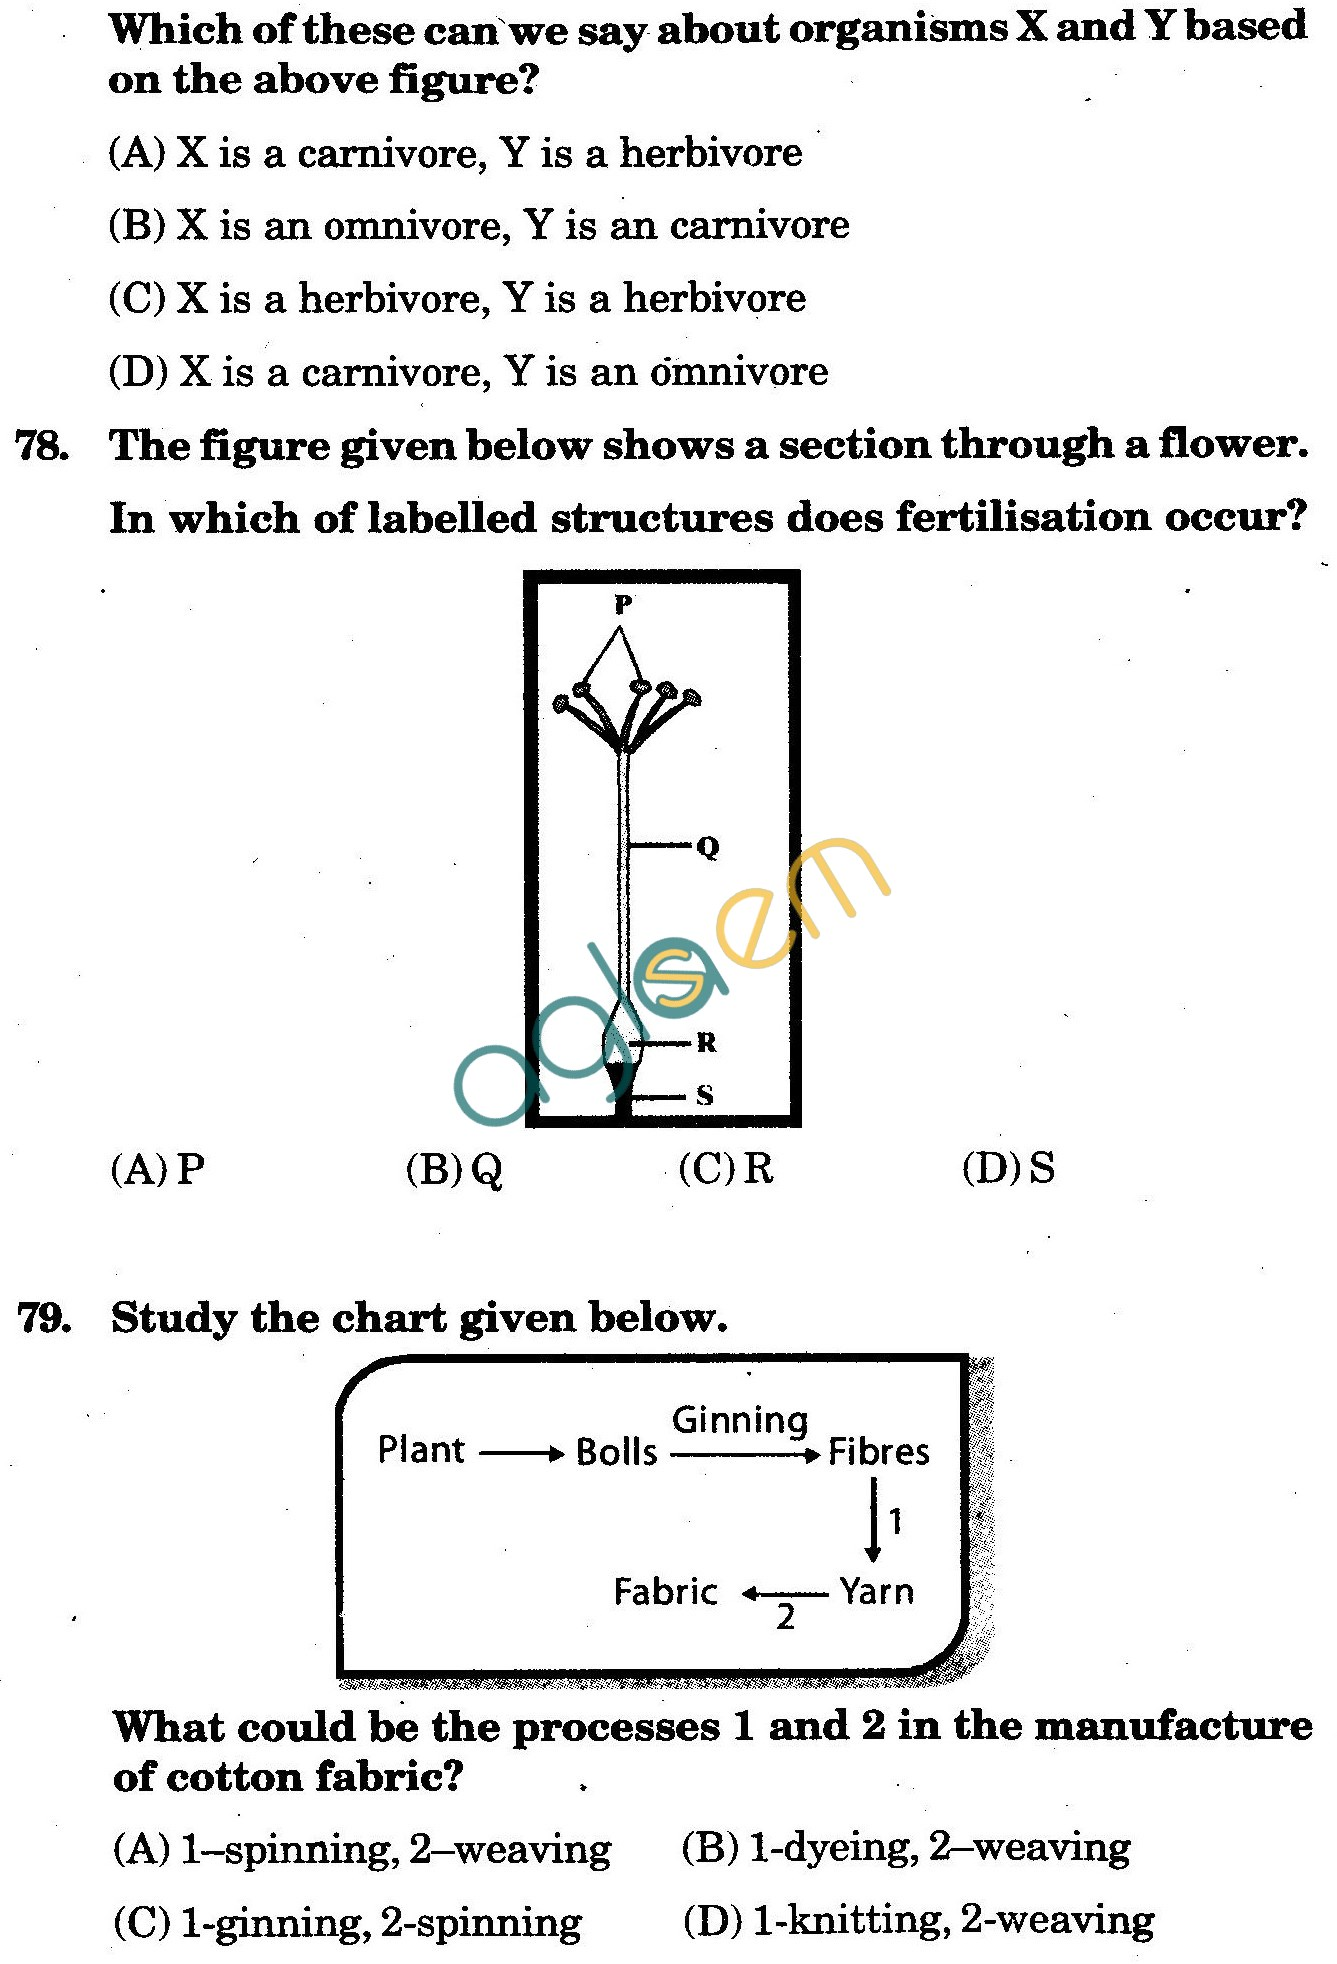 NSTSE 2010: Class VI Question Paper with Answers - Biology